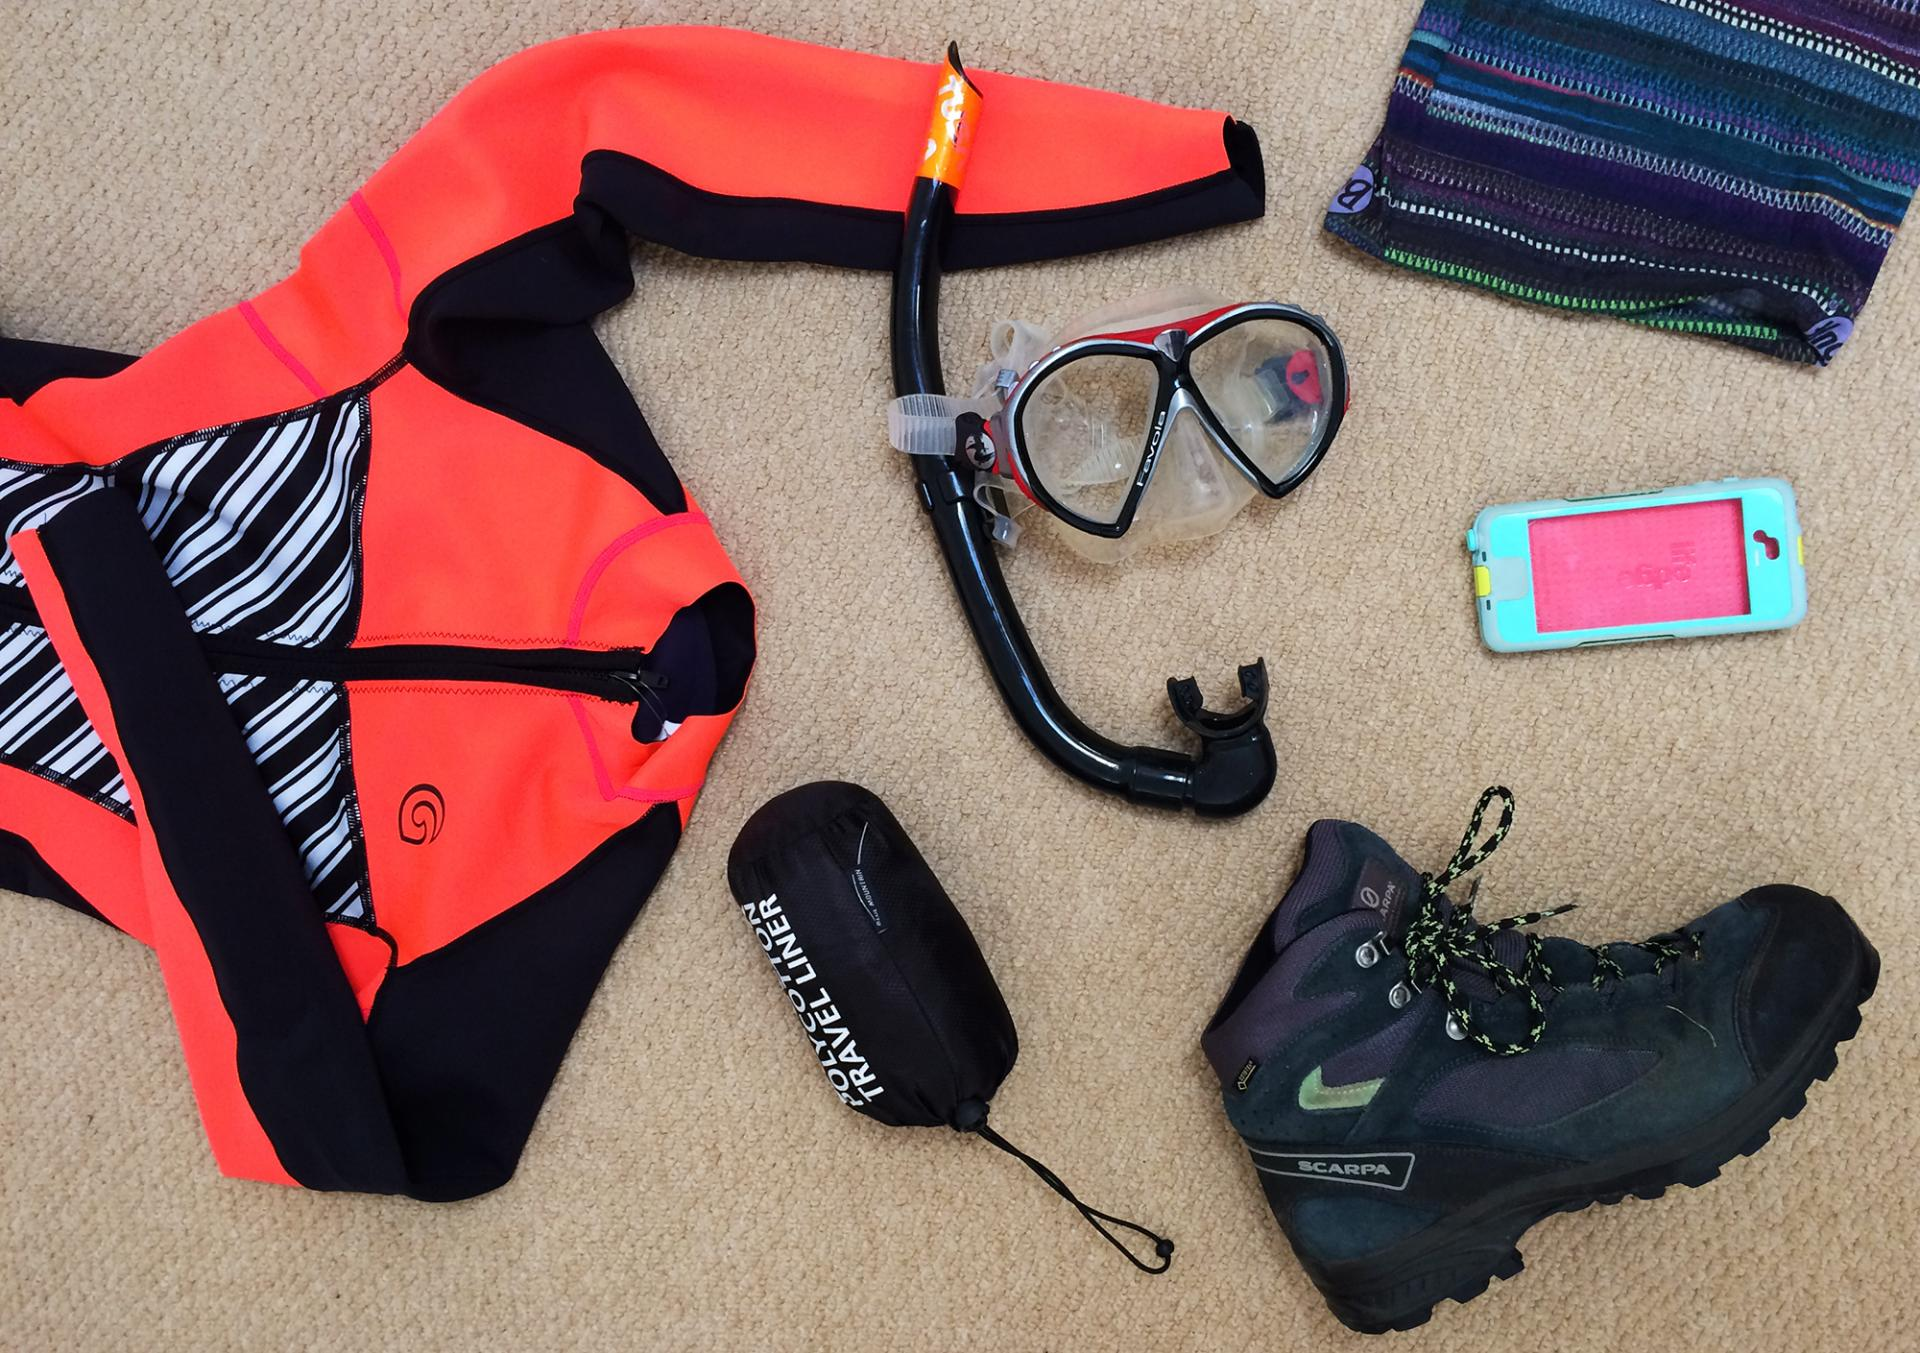 Video: My essential kit for adventure travel